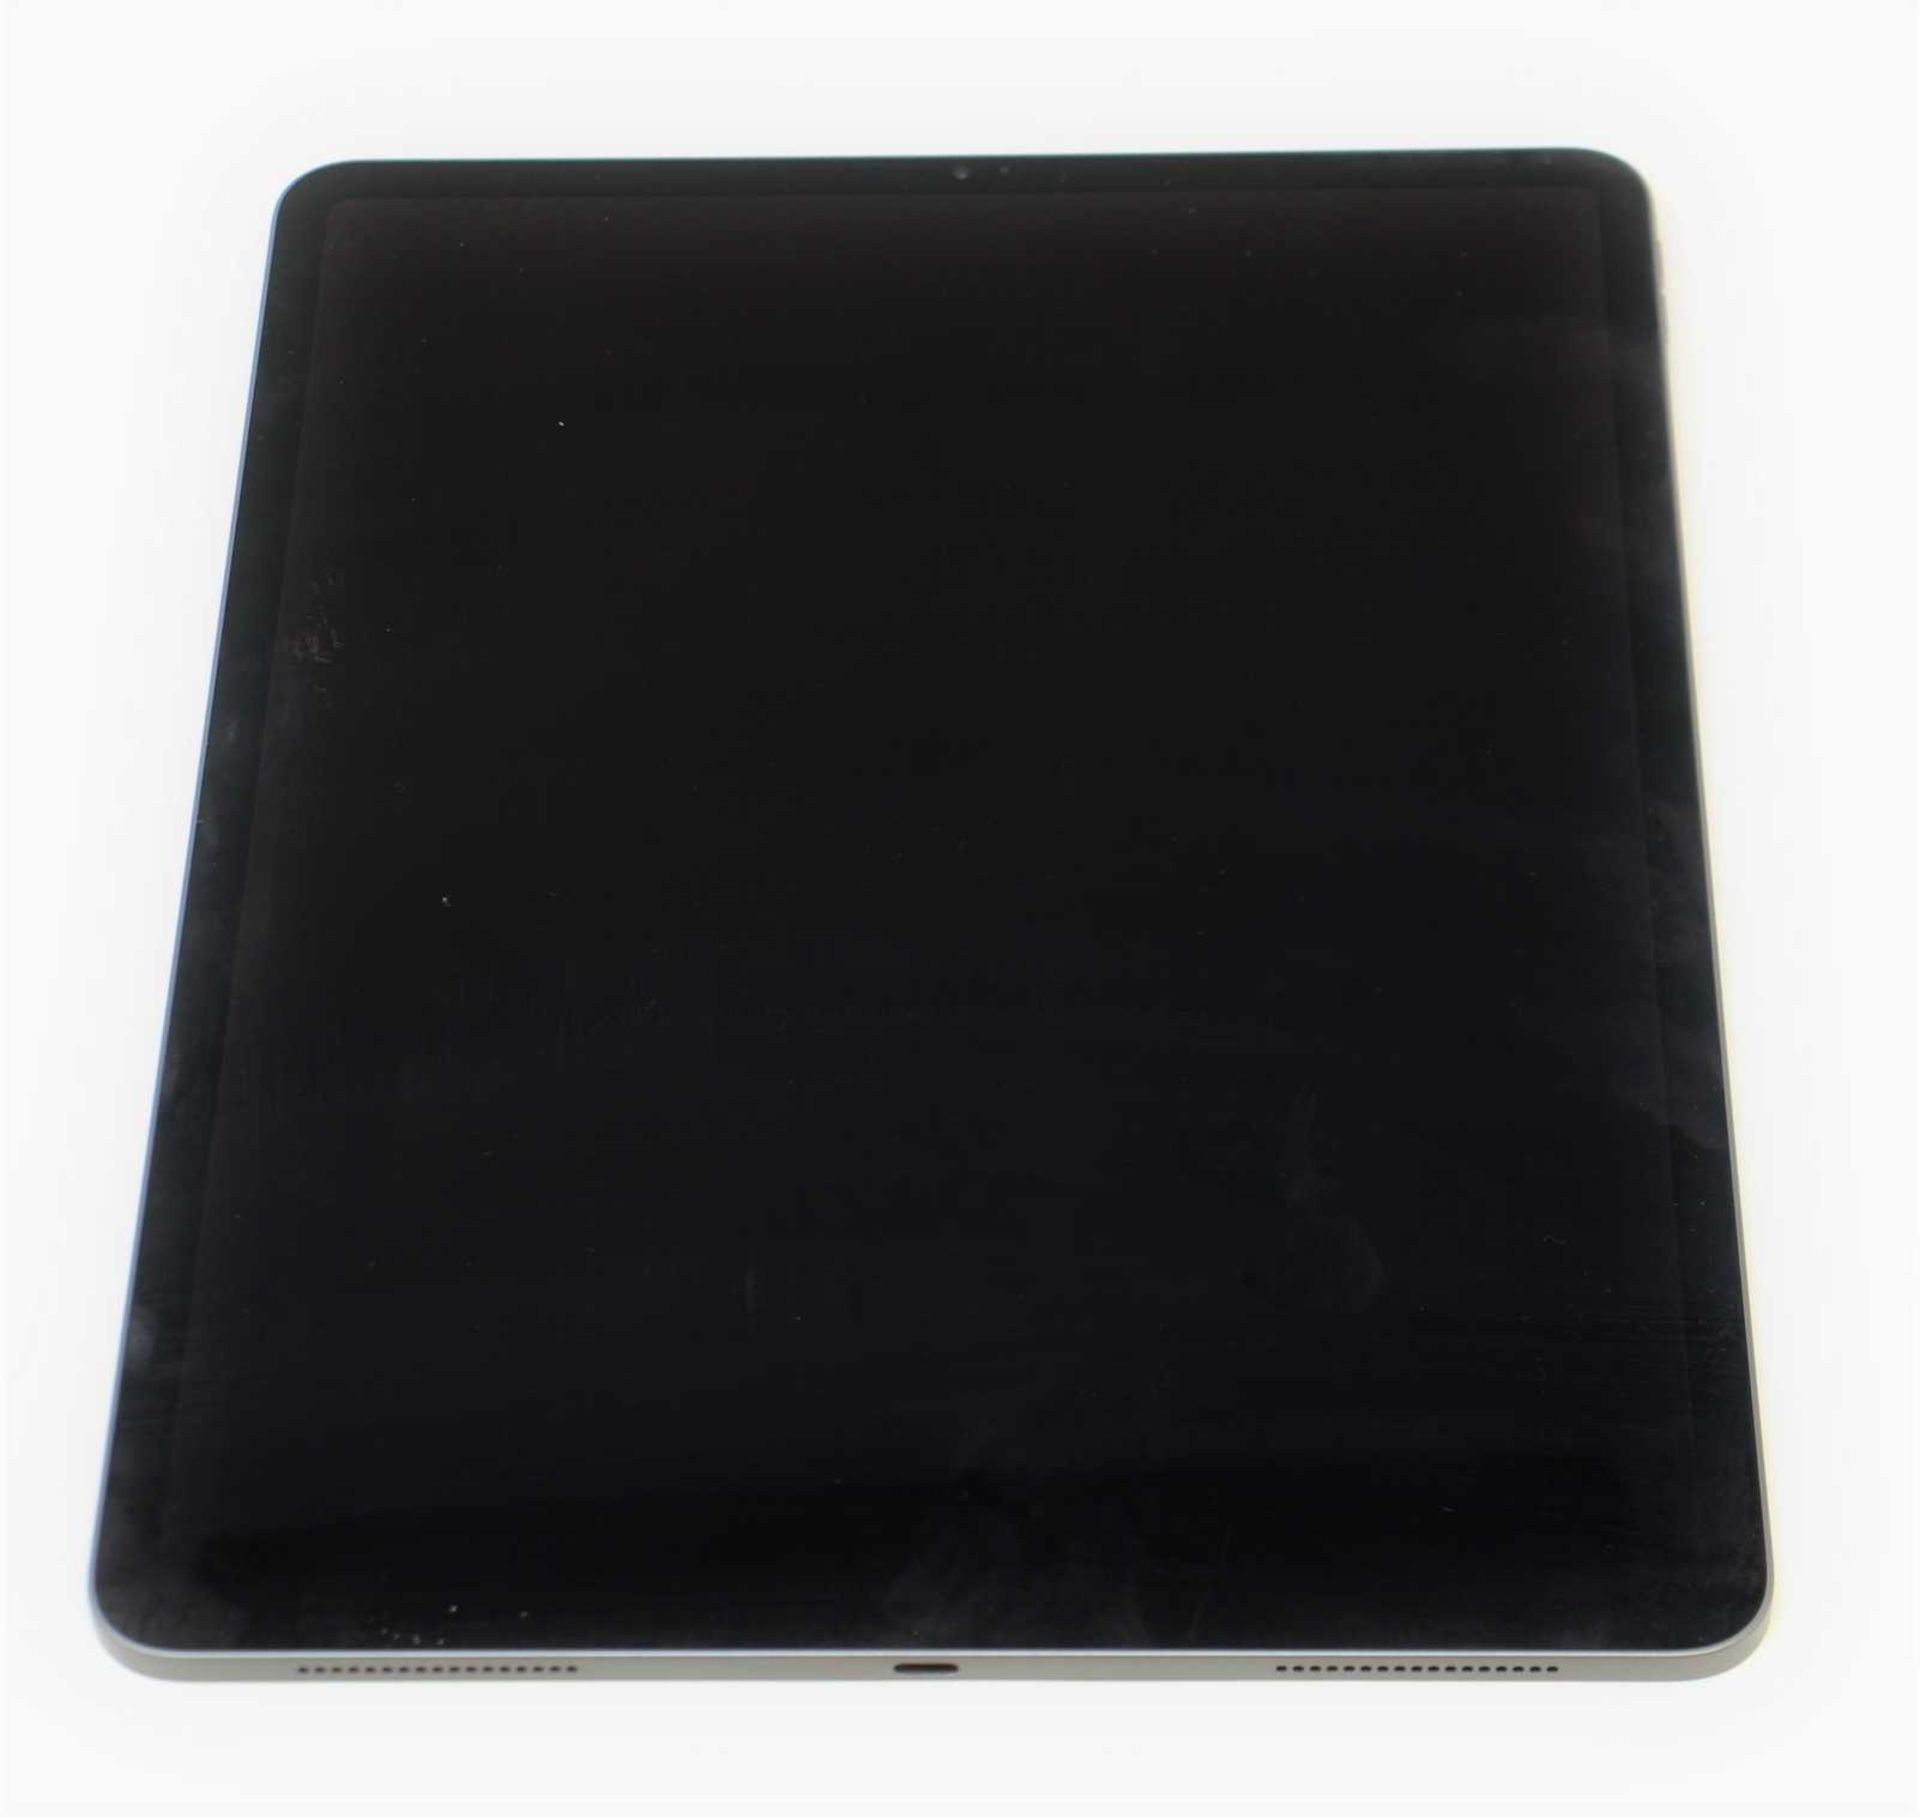 """SOLD FOR PARTS: A pre-owned Apple iPad Pro 4 12.9"""" A2229 256GB in Space Grey (Activation lock clear) - Image 8 of 8"""